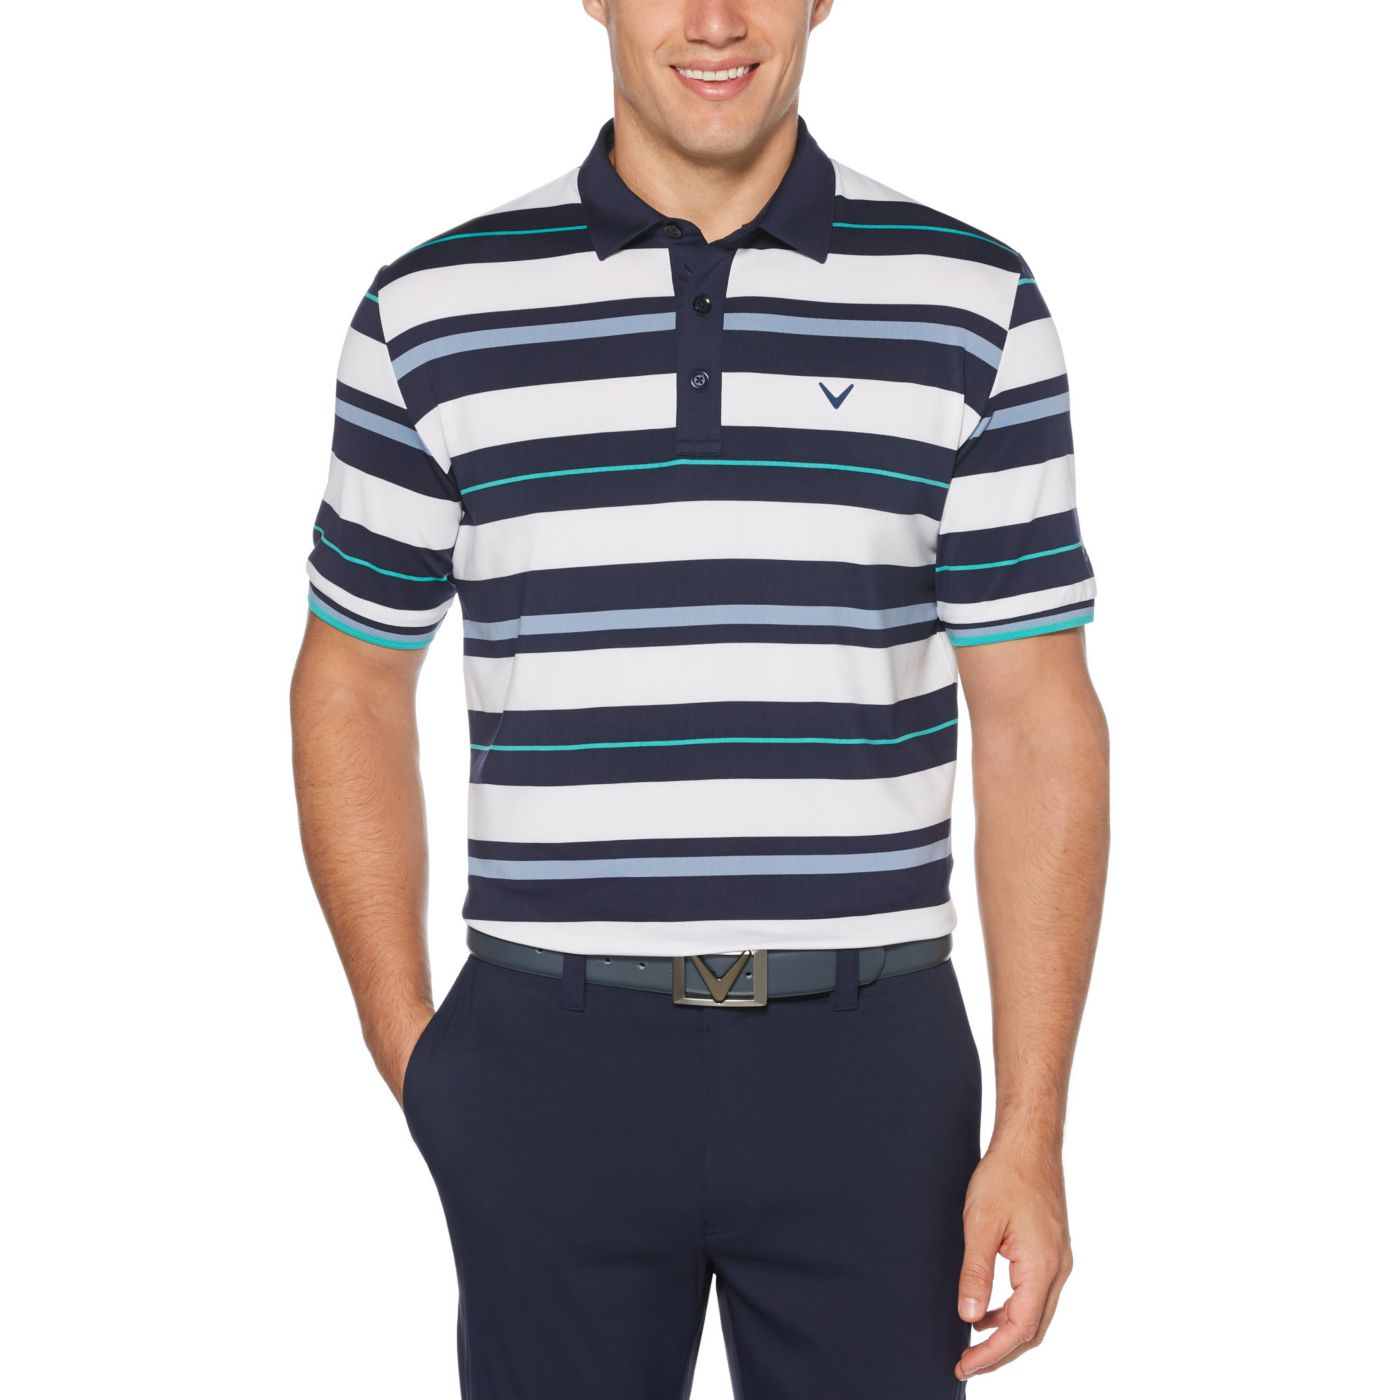 Callaway Men's Roadmap Striped Golf Polo